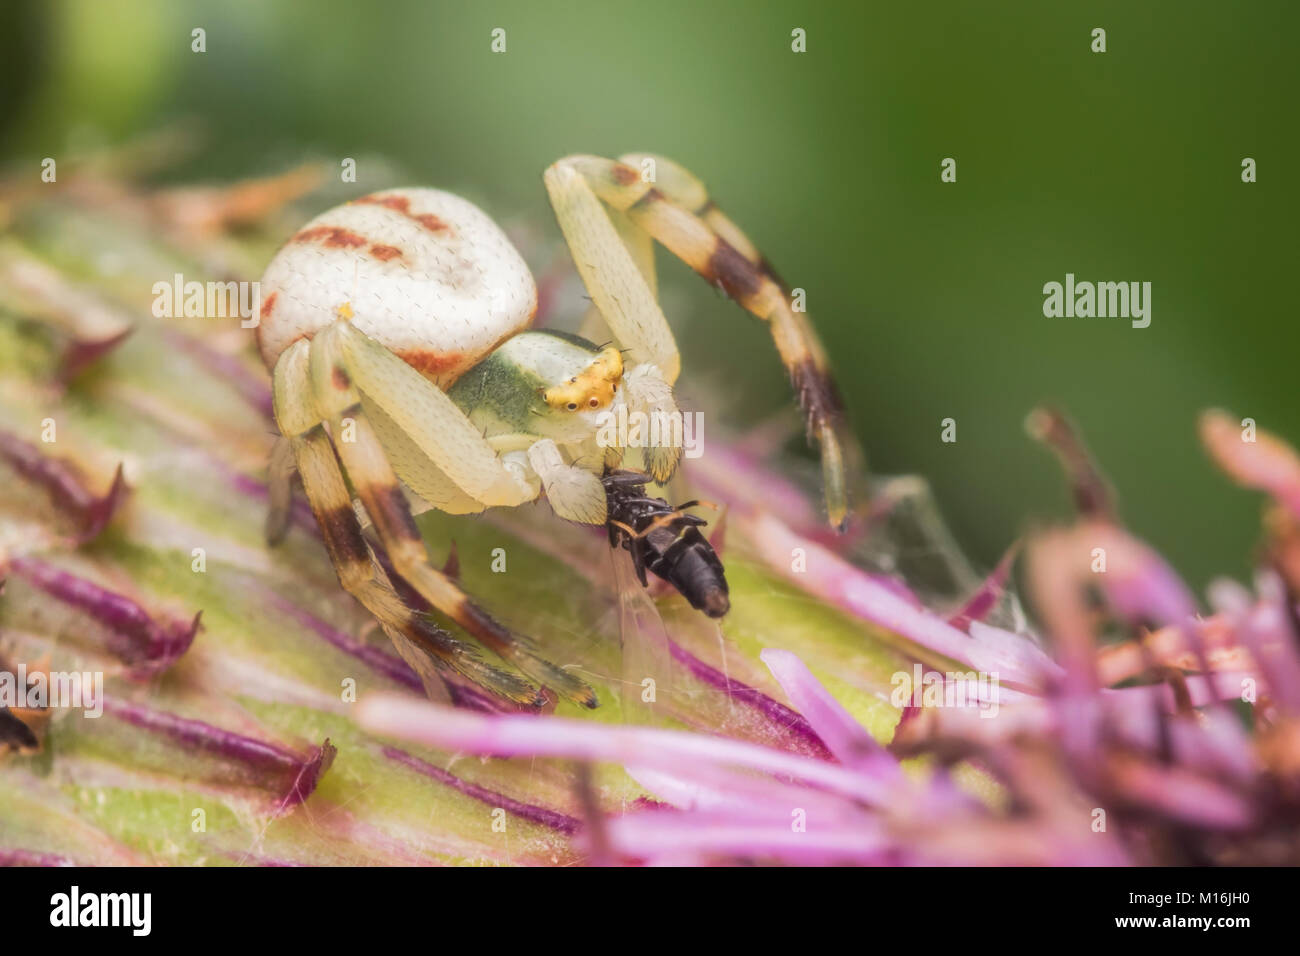 Crab Spider (Misumena vatia) siting on a thistle with its prey. Thurles, Tipperary, Ireland. - Stock Image